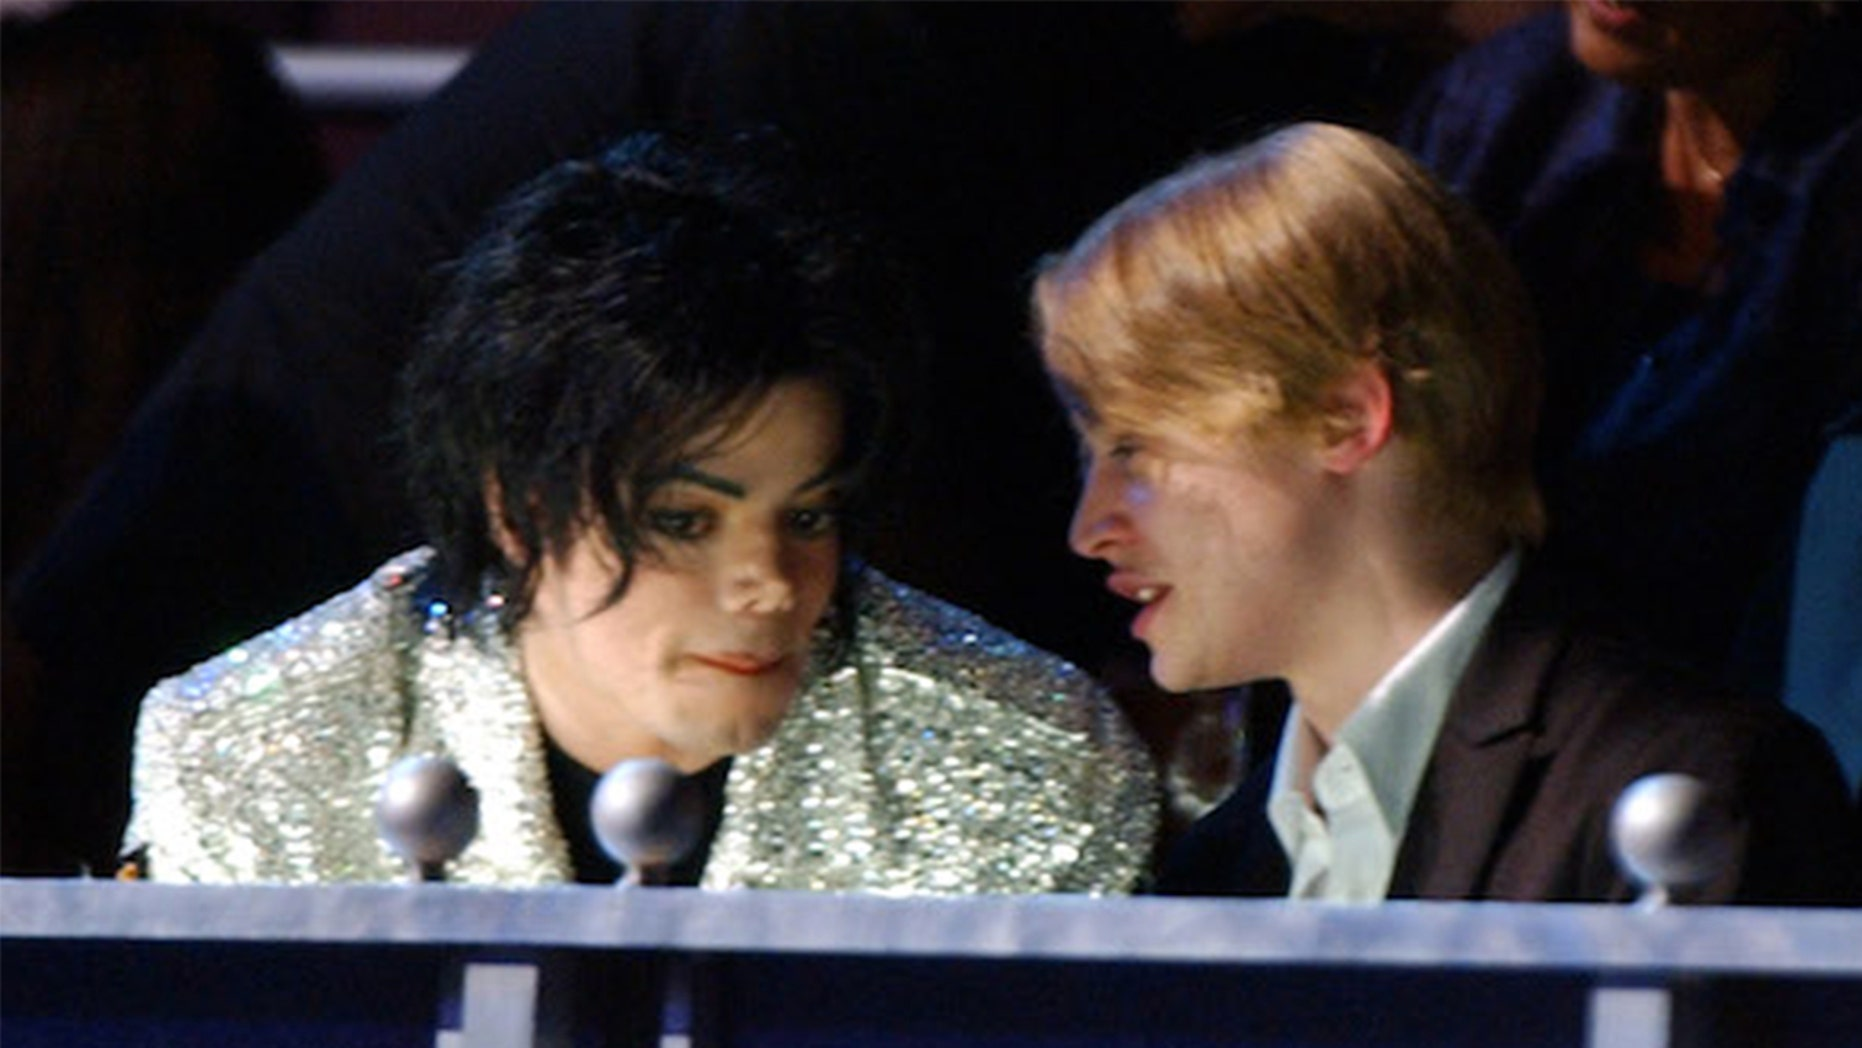 In a recent podcast interview, Macaulay Culkin talked about his friendship with Michael Jackson.